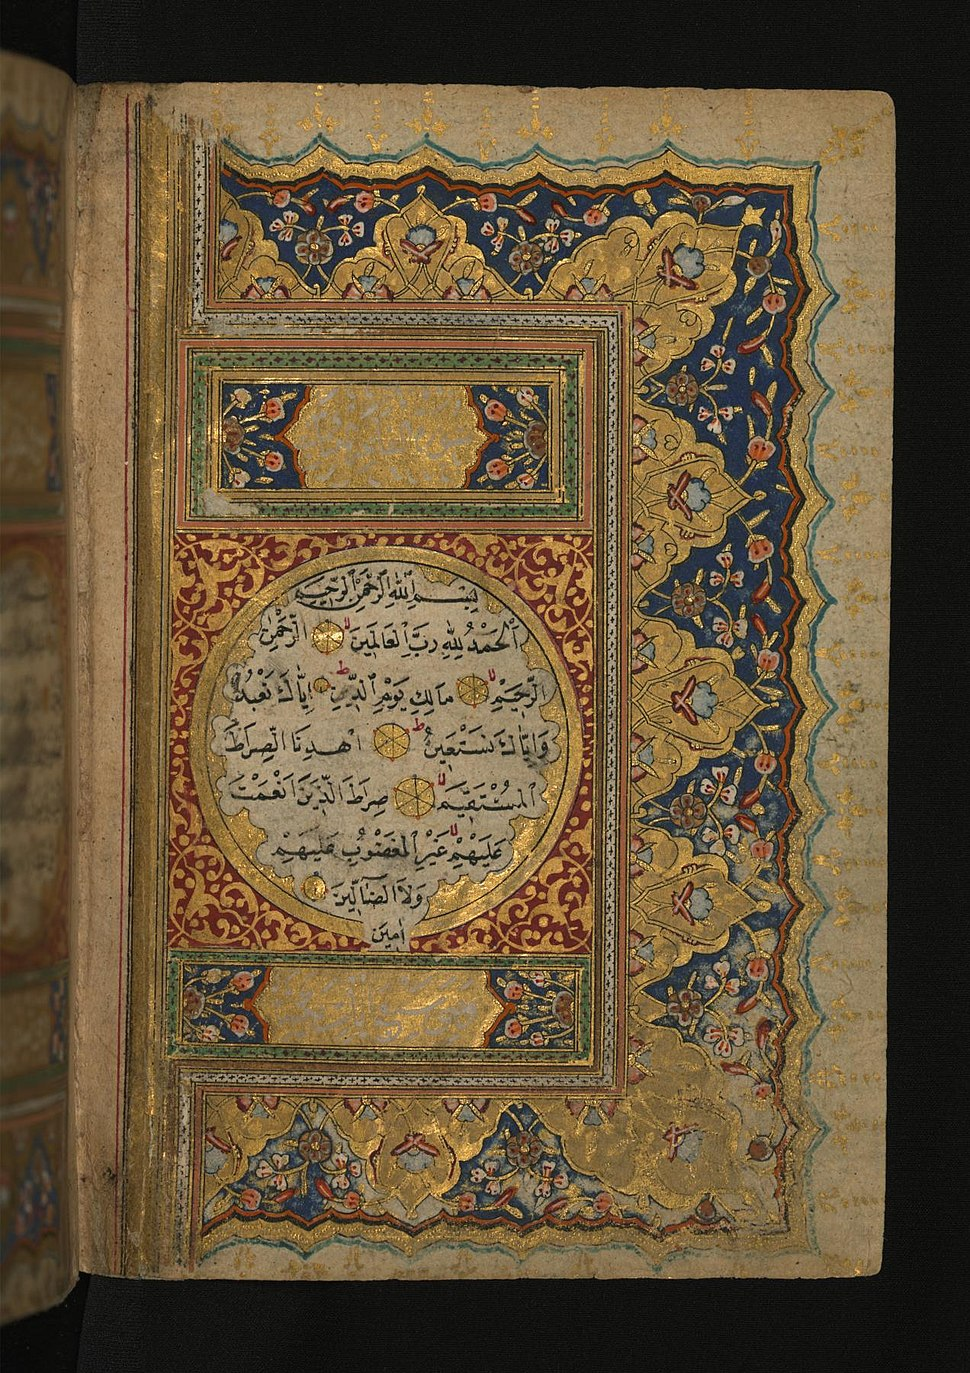 Muhammad ibn Mustafa Izmiri - Right Side of an Illuminated Double-page Incipit - Walters W5771B - Full Page